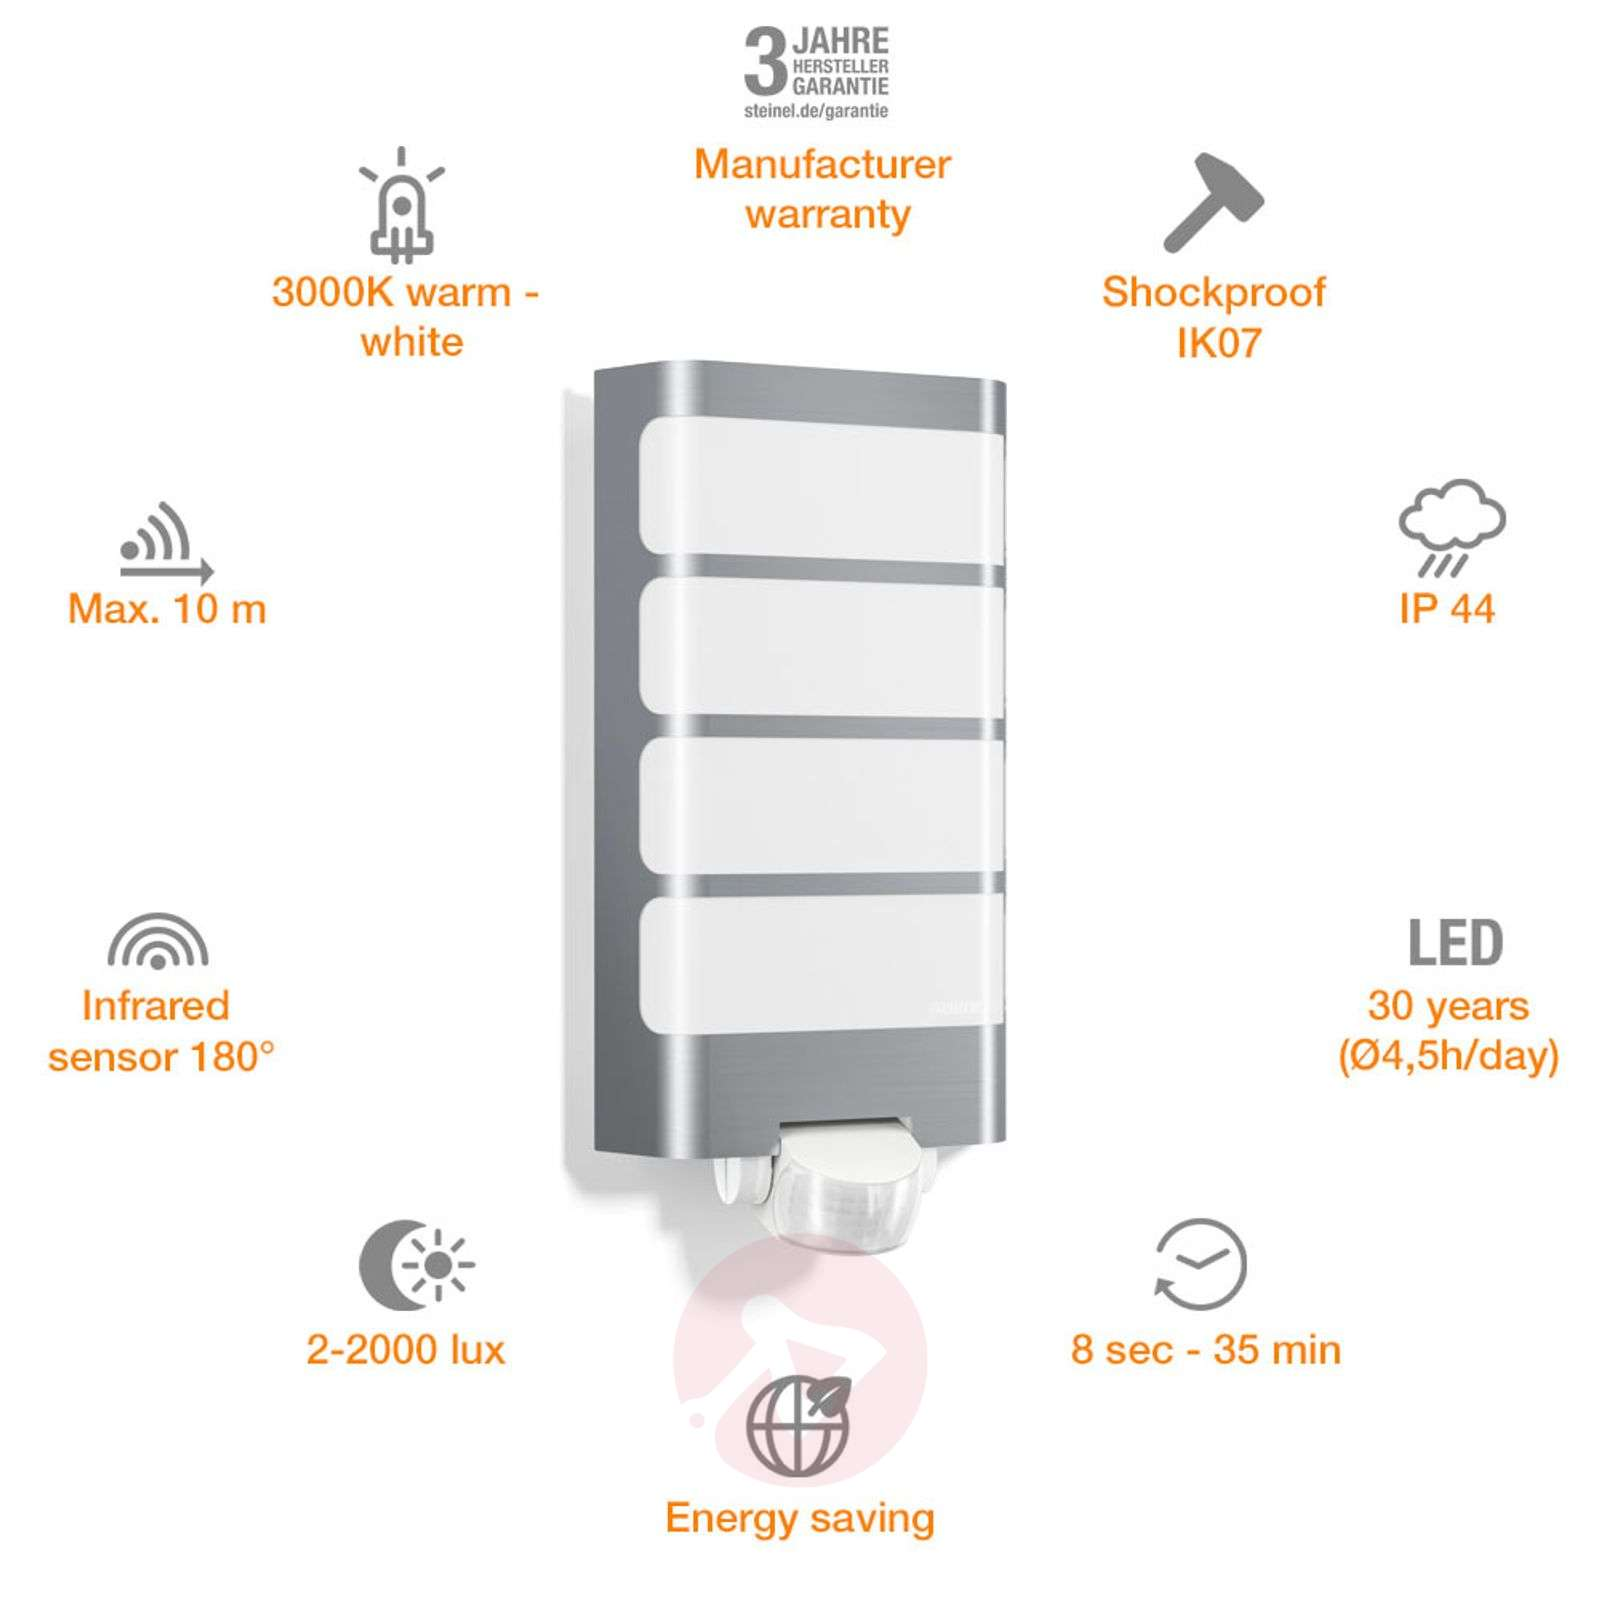 LED outdoor wall light L244 with motion sensor-8505707-01